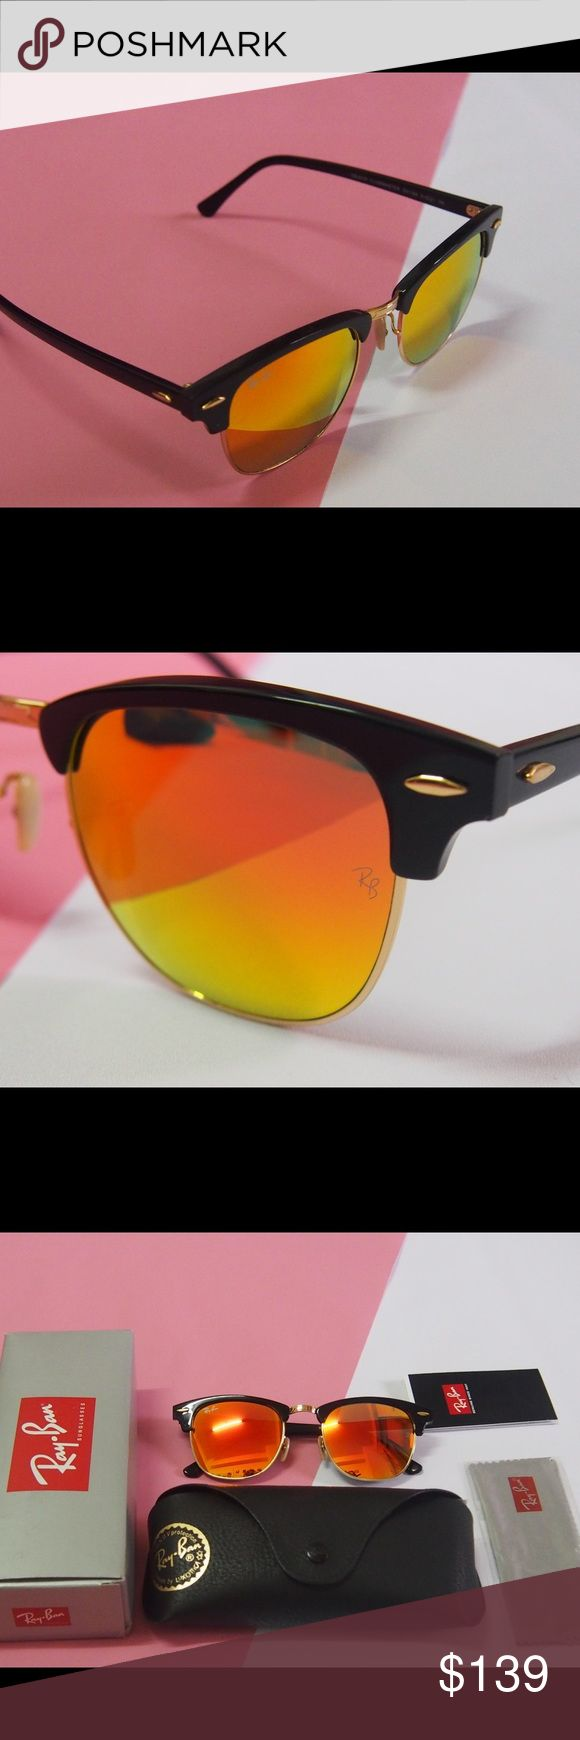 NWT RB clubmaster 3016 sunglasses Orange RB 3016 clubmaster sunglasses Orange  100% authentic and brand new No scratches 62mm  You can check the carved letters on the surface of the glasses Ray-Ban Accessories Sunglasses